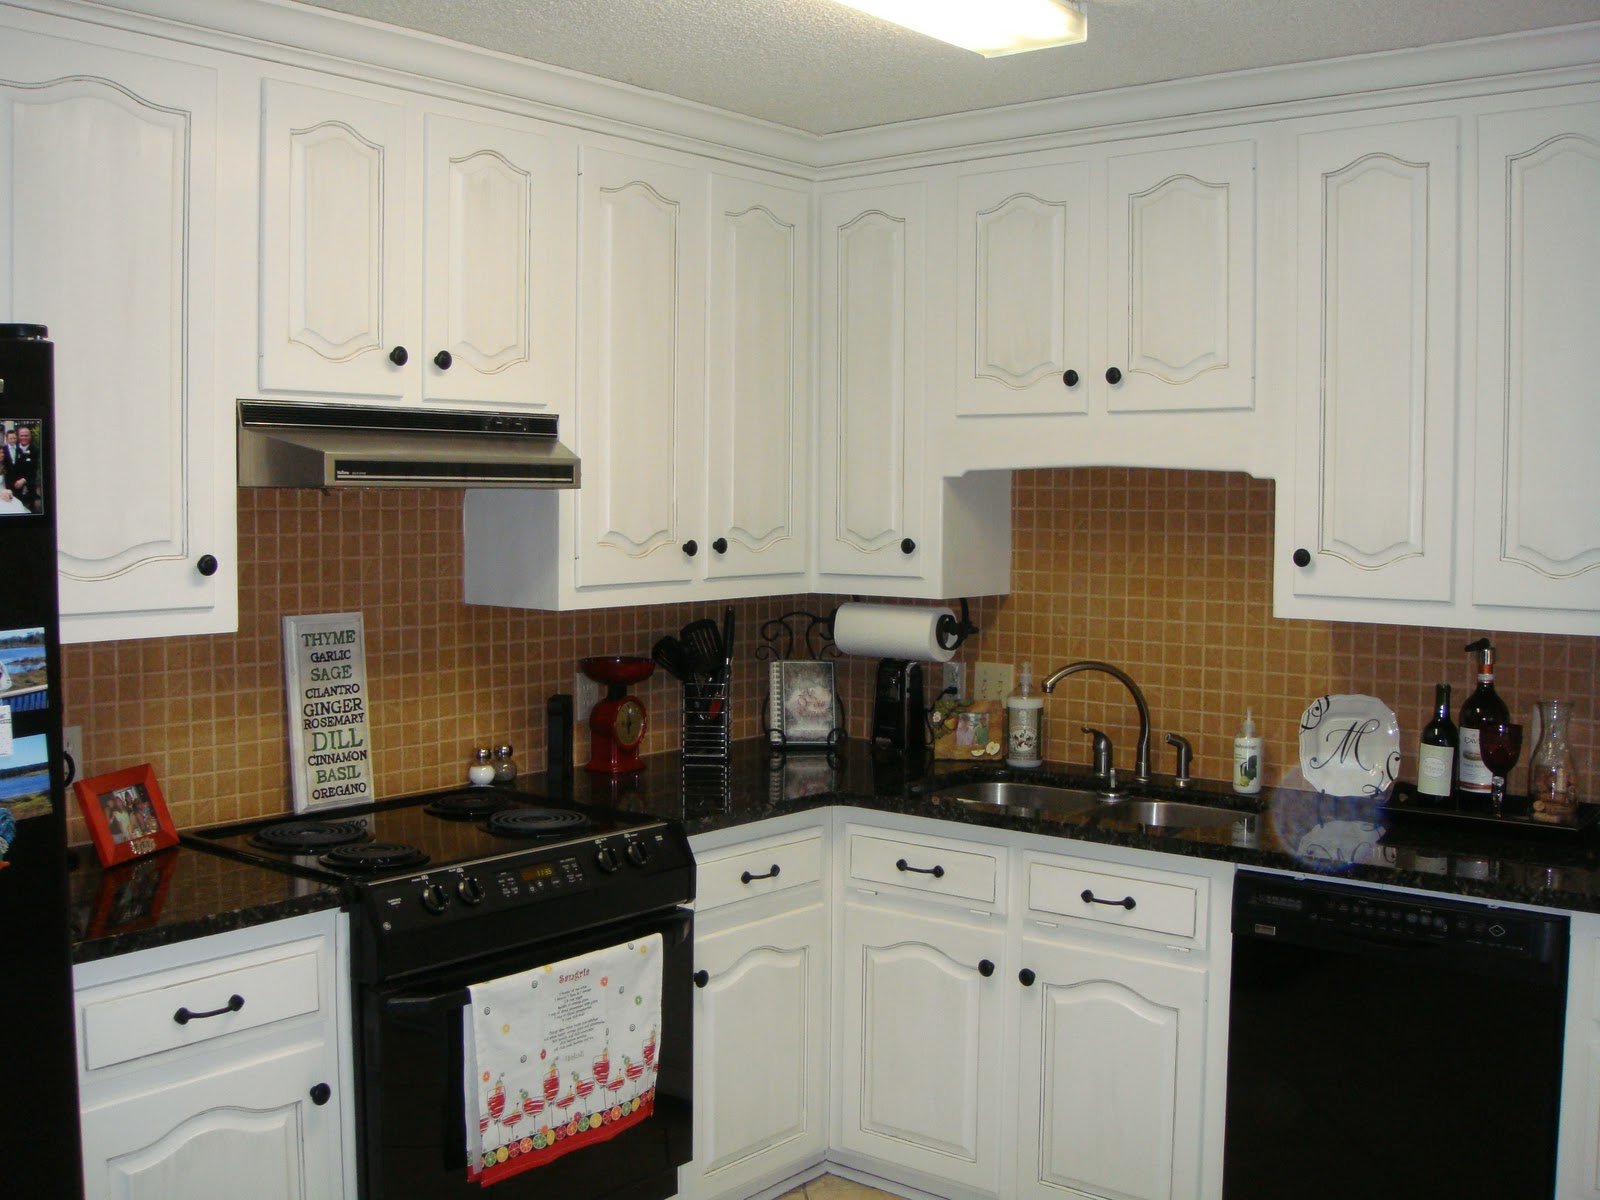 Black Kitchen Cabinets With White Appliances Brooklyn Apartment